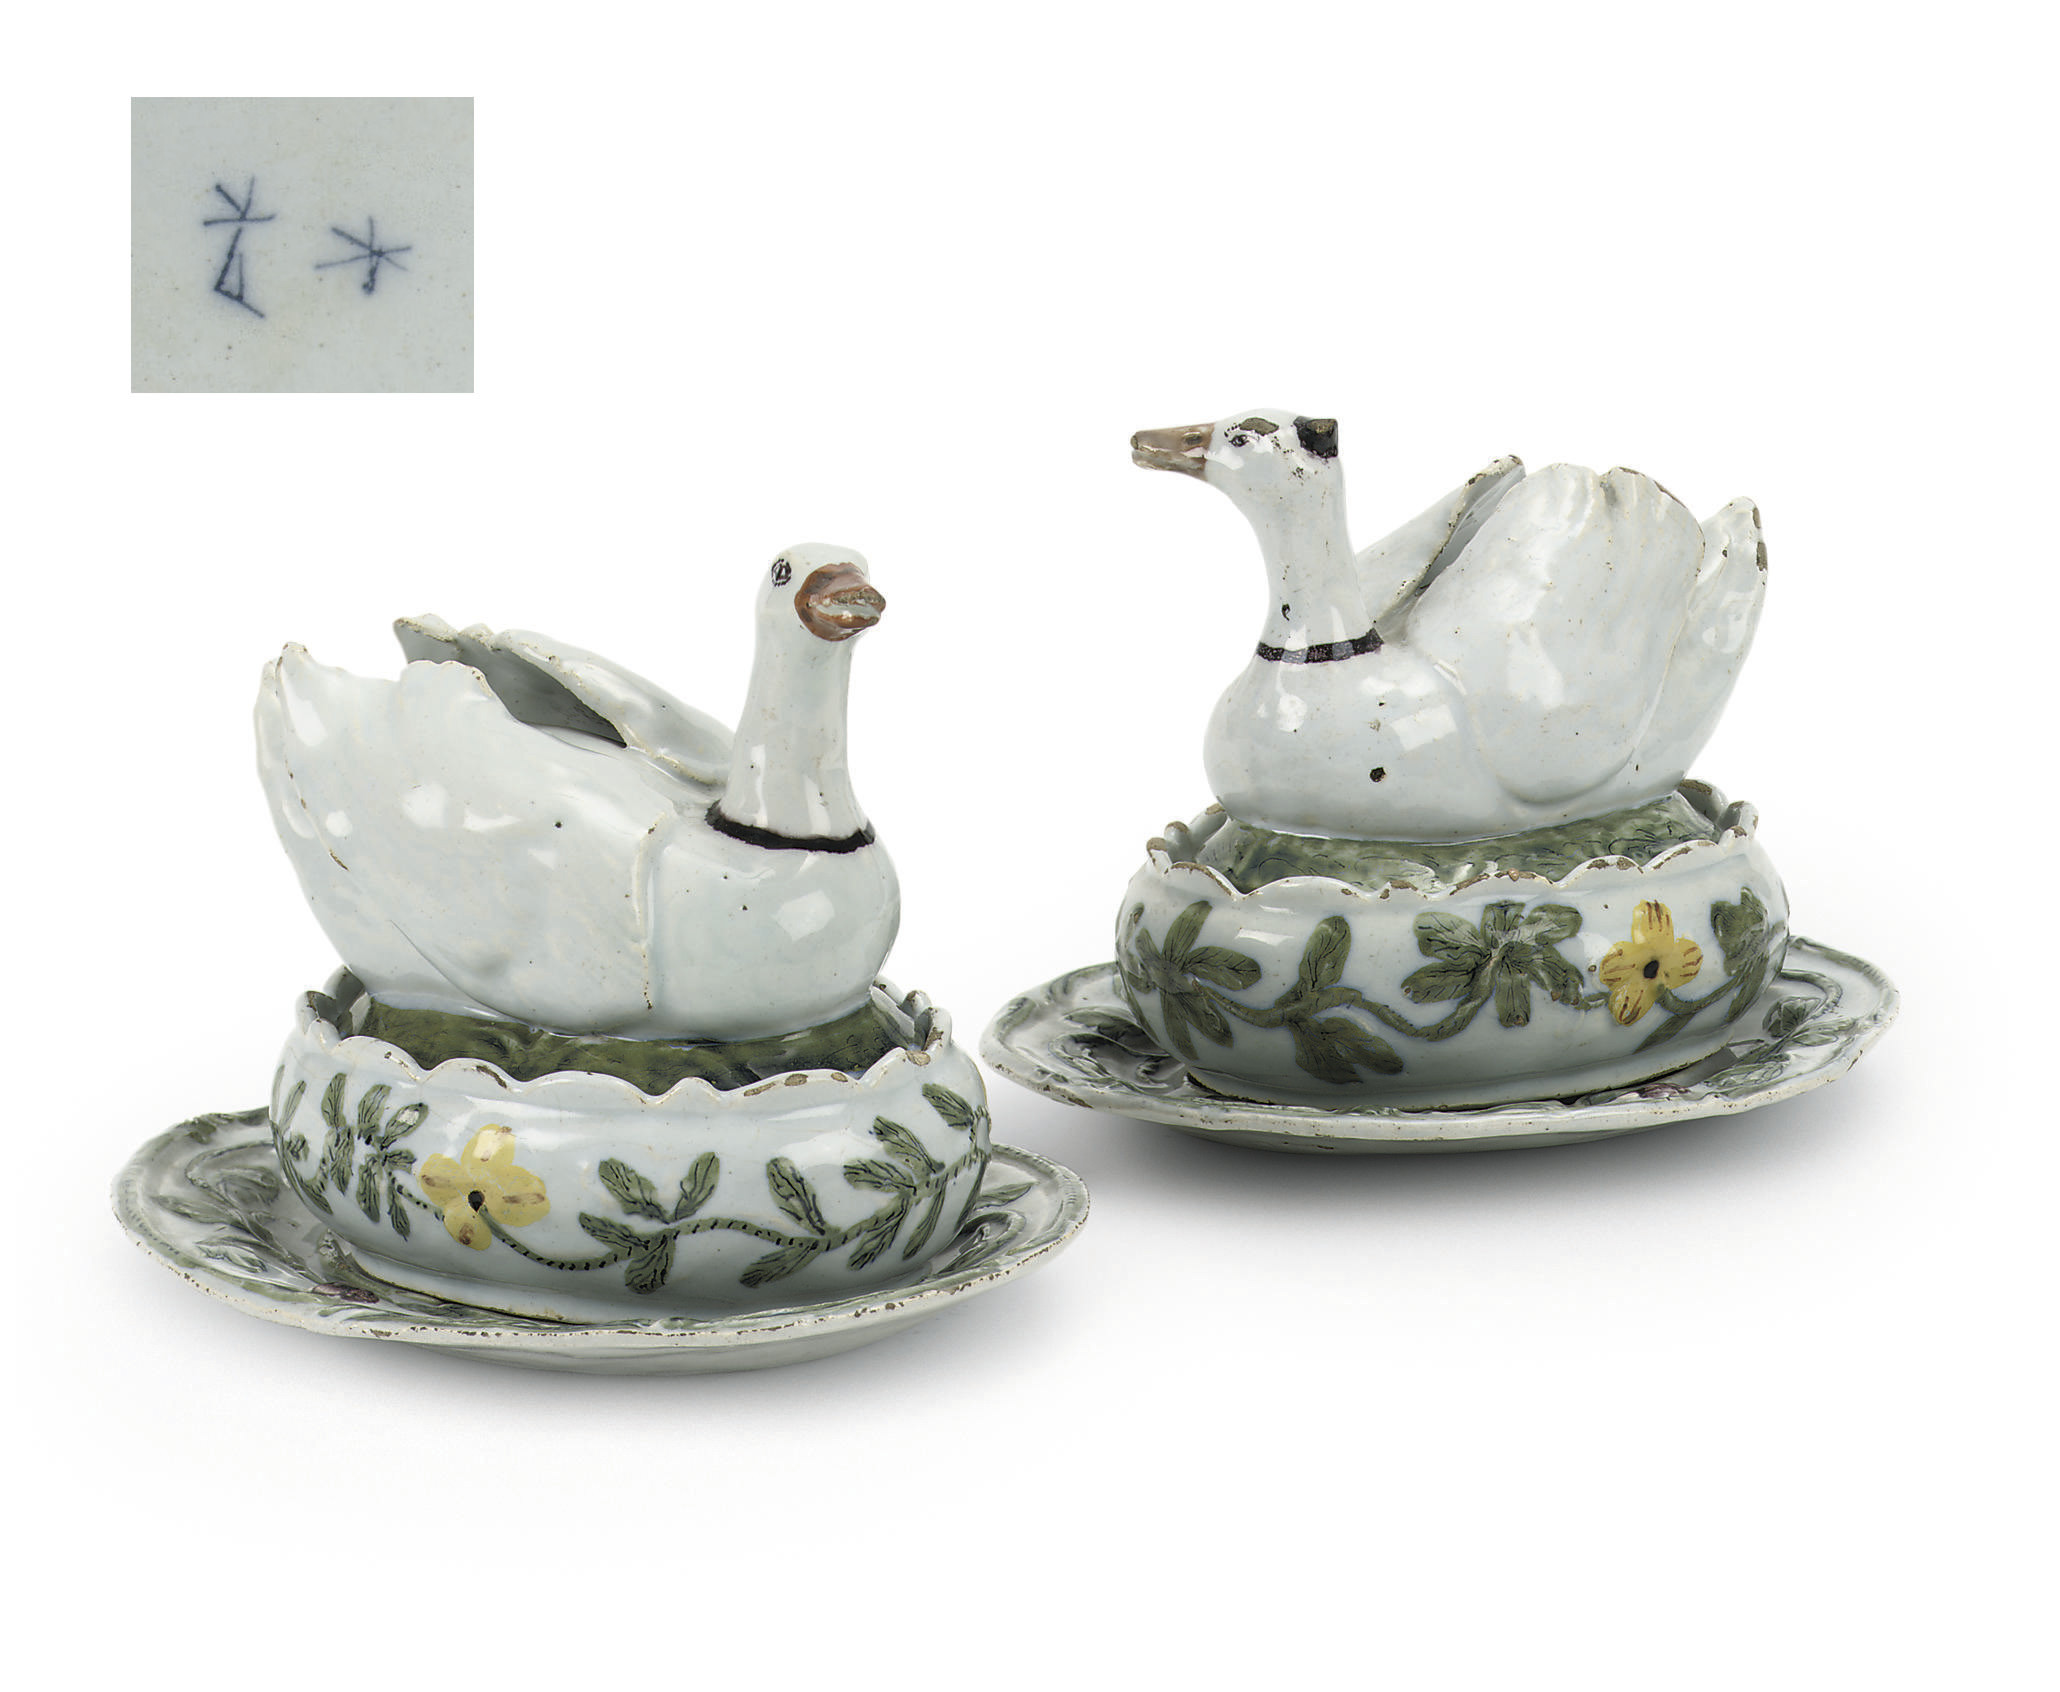 A PAIR OF DUTCH DELFT BUTTER B